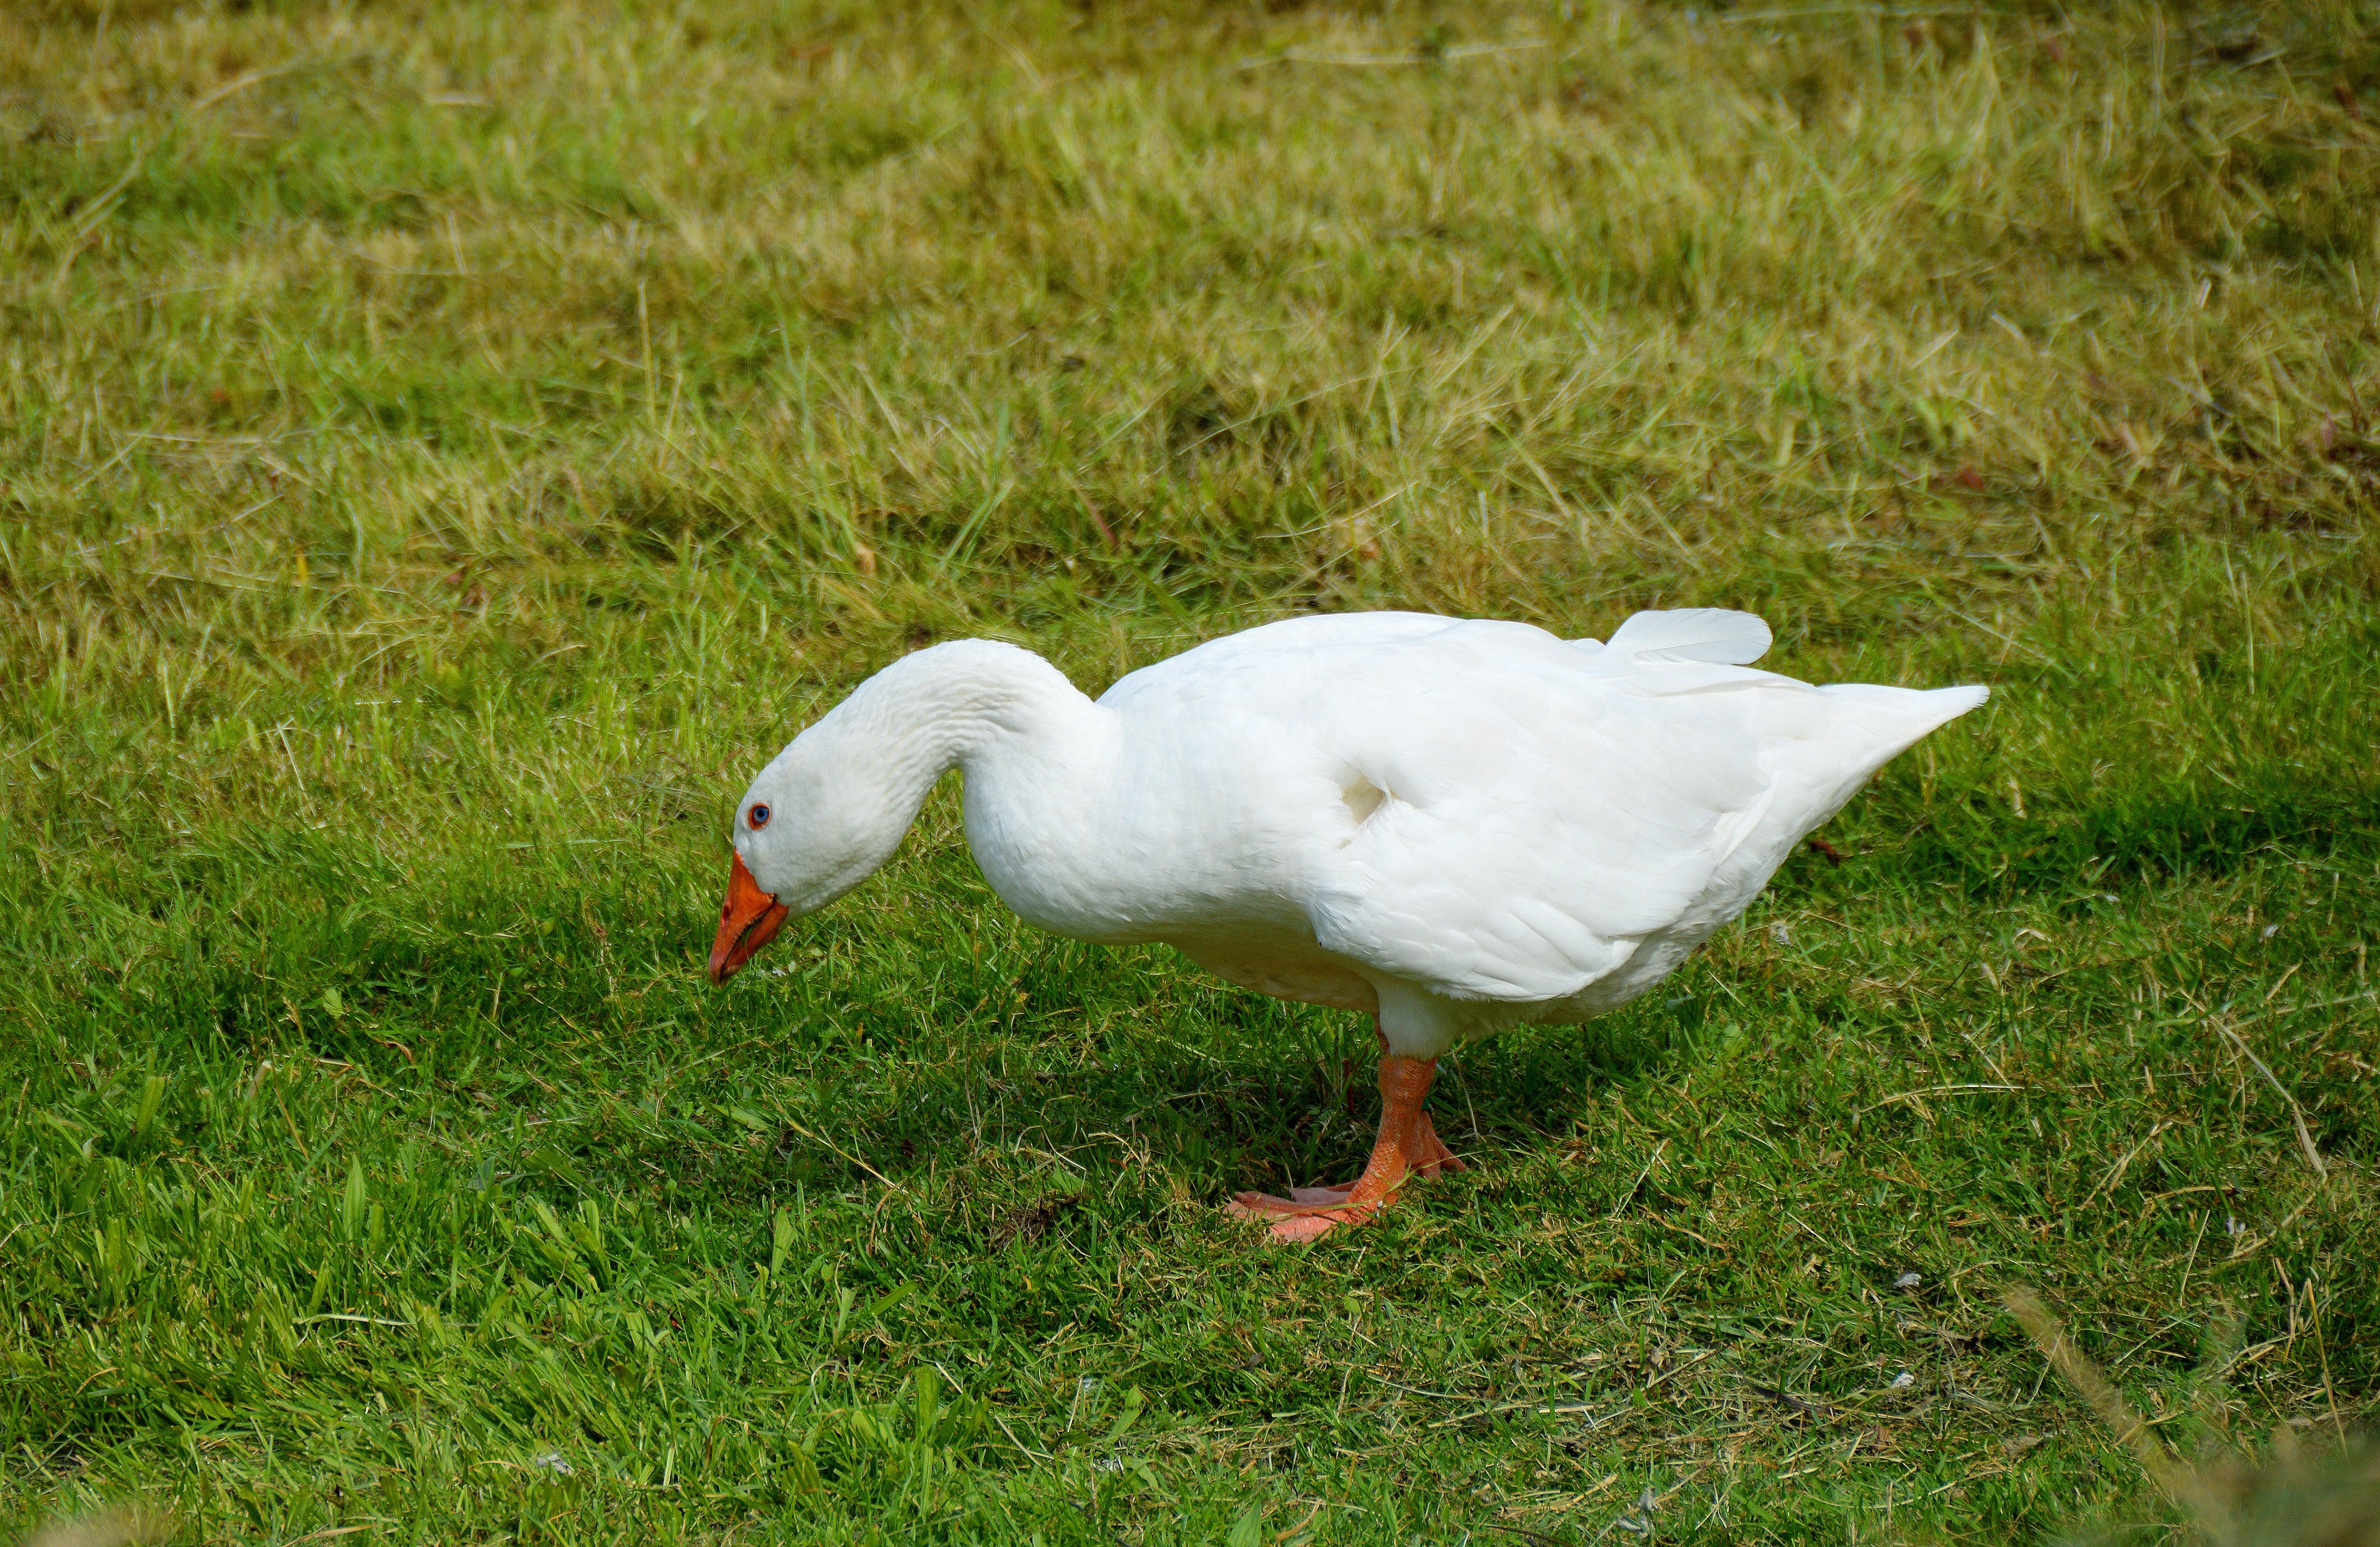 White Goose on Green Grass Field during Daytime